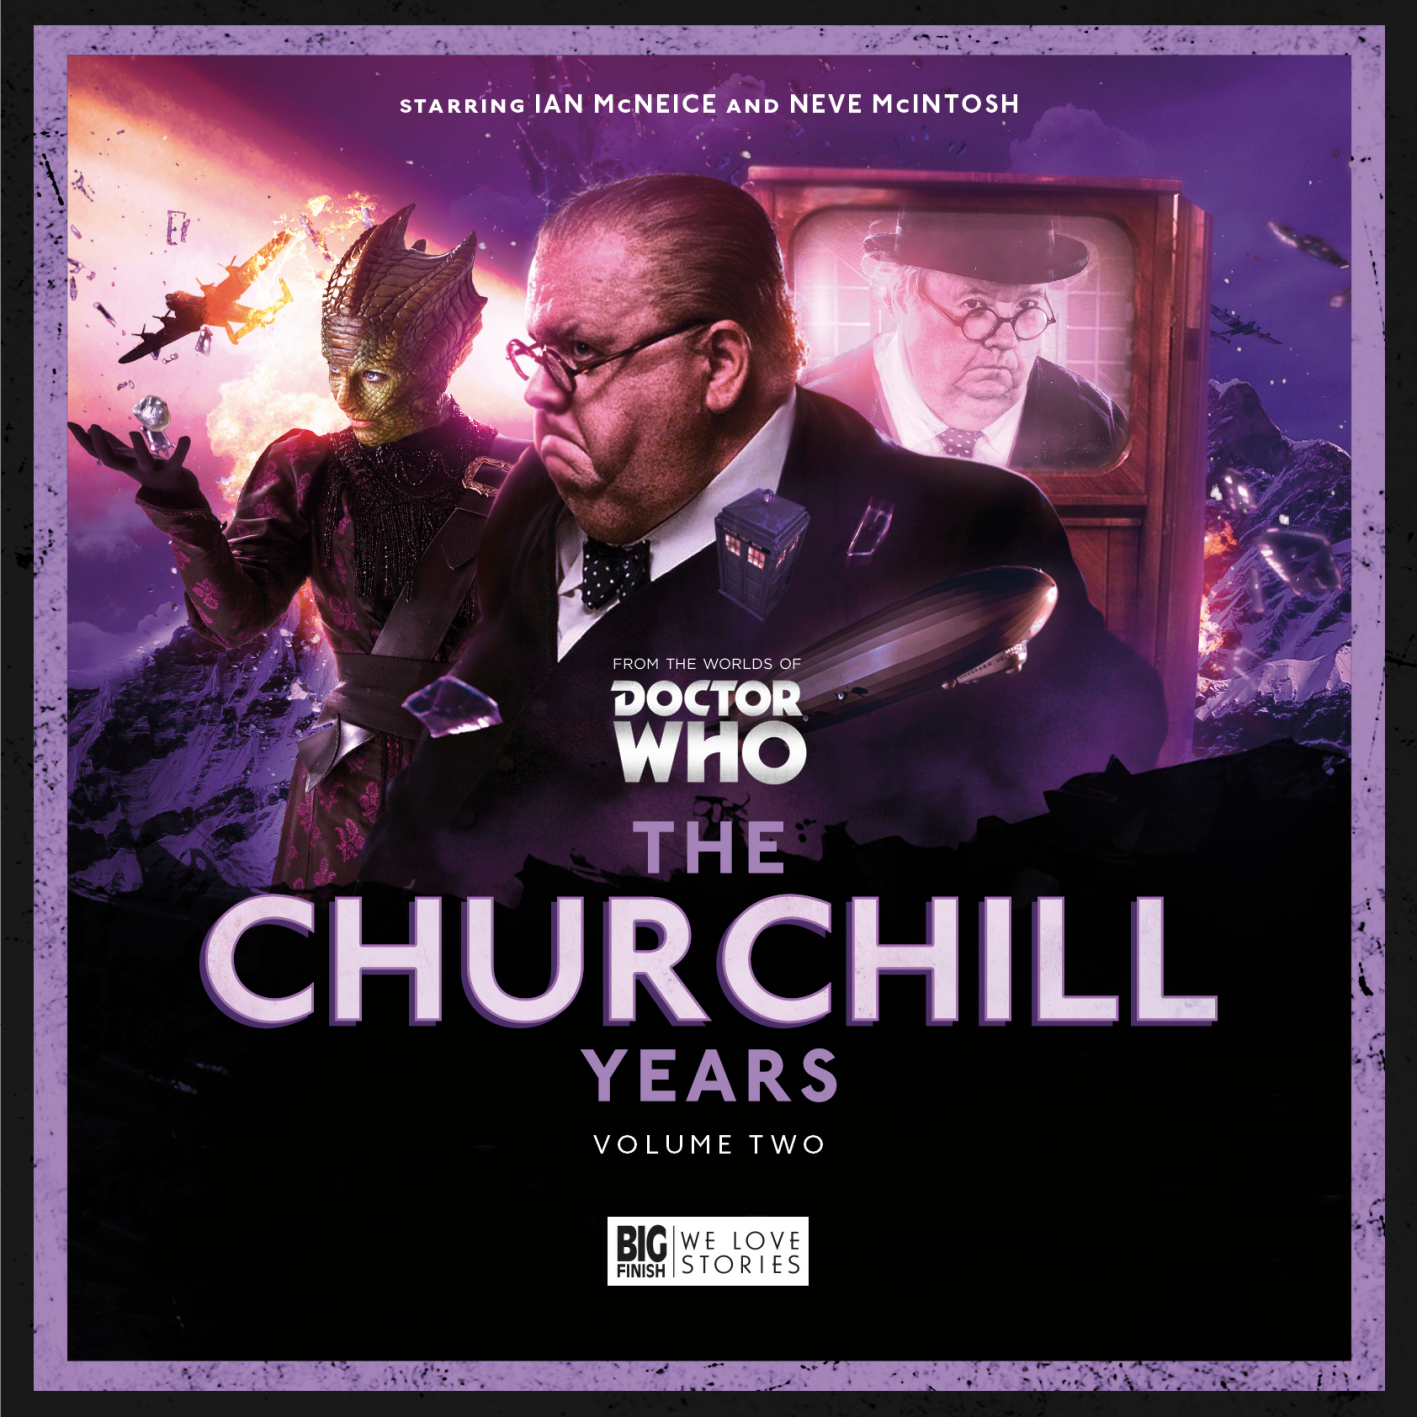 The Churchill Years Vol 2